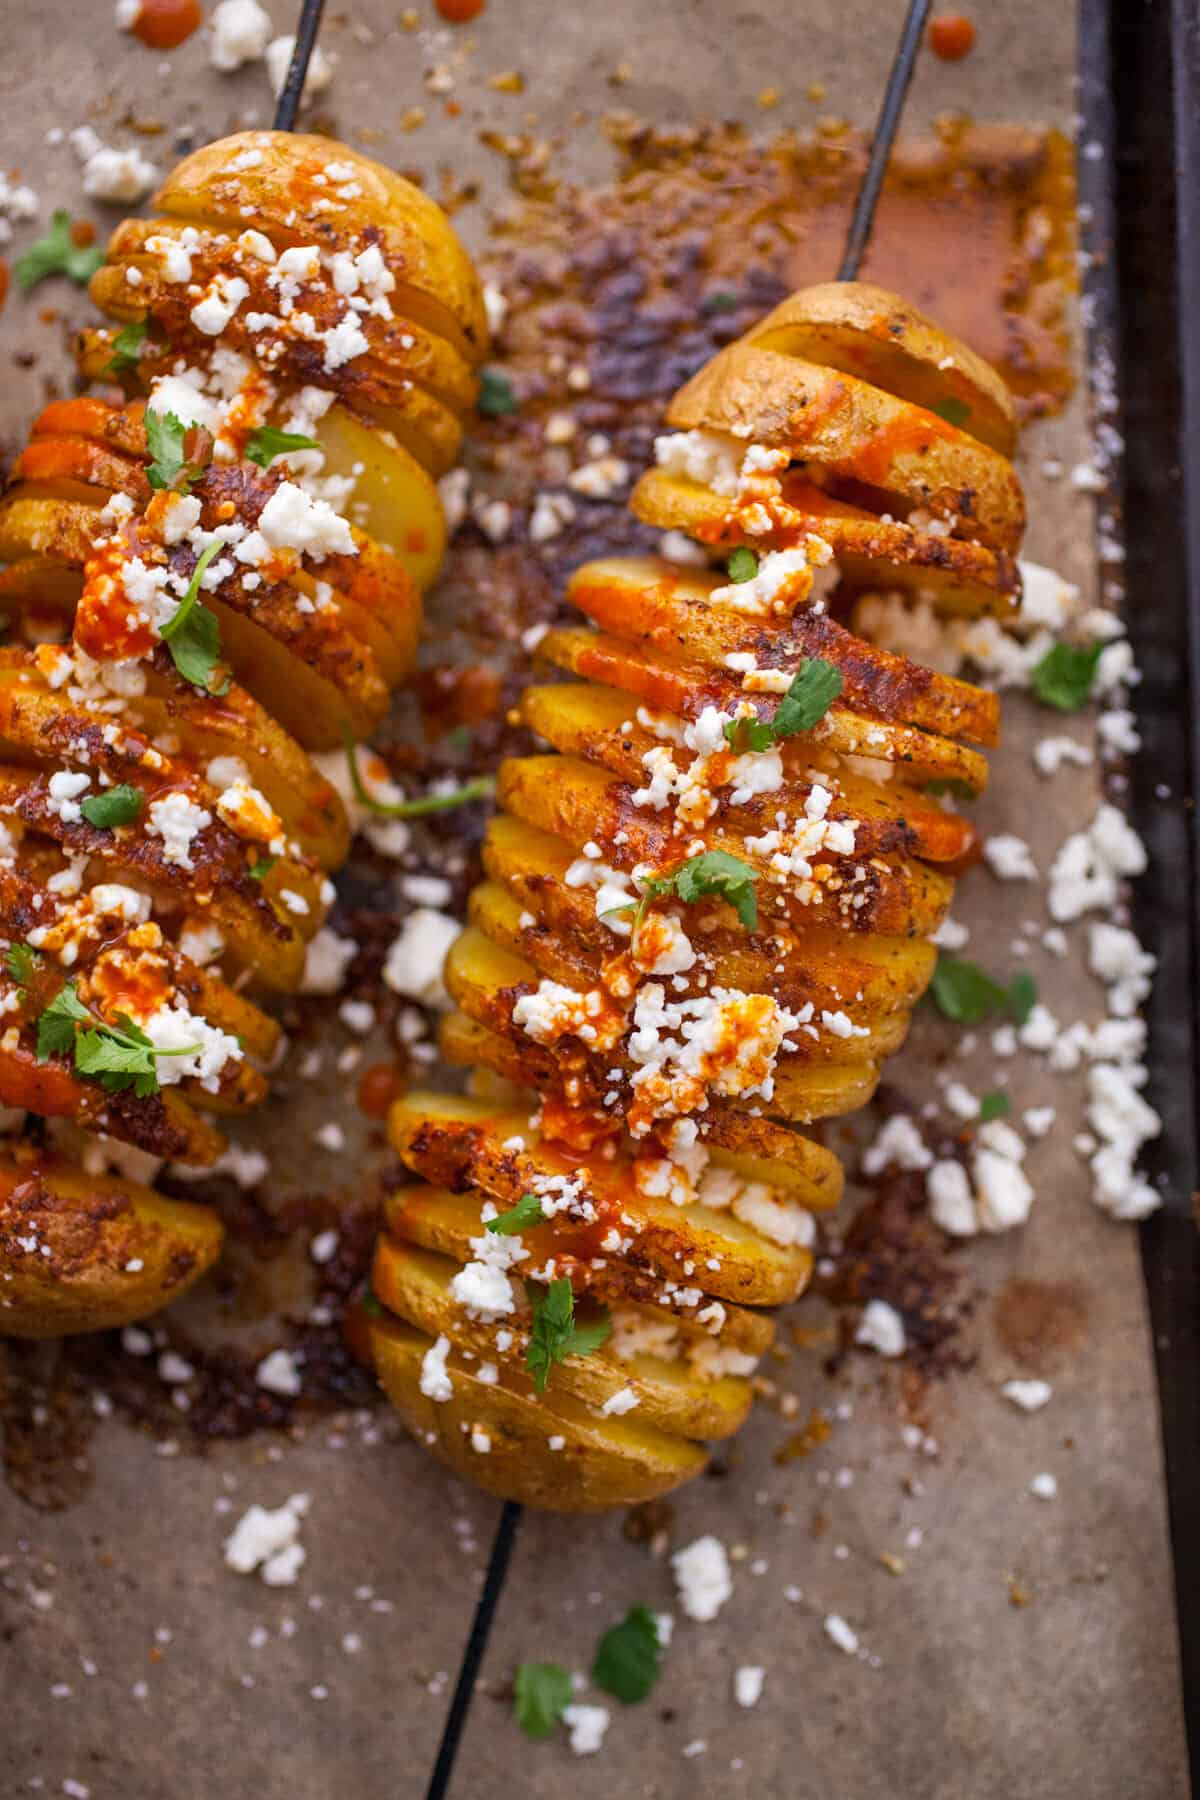 Chili Tornado Potatoes: Perfectly seasoned potatoes cut in a swirl and baked. Topped with a crumble of cheese and cilantro. A great tex-mex or side or party appetizer! | macheesmo.com